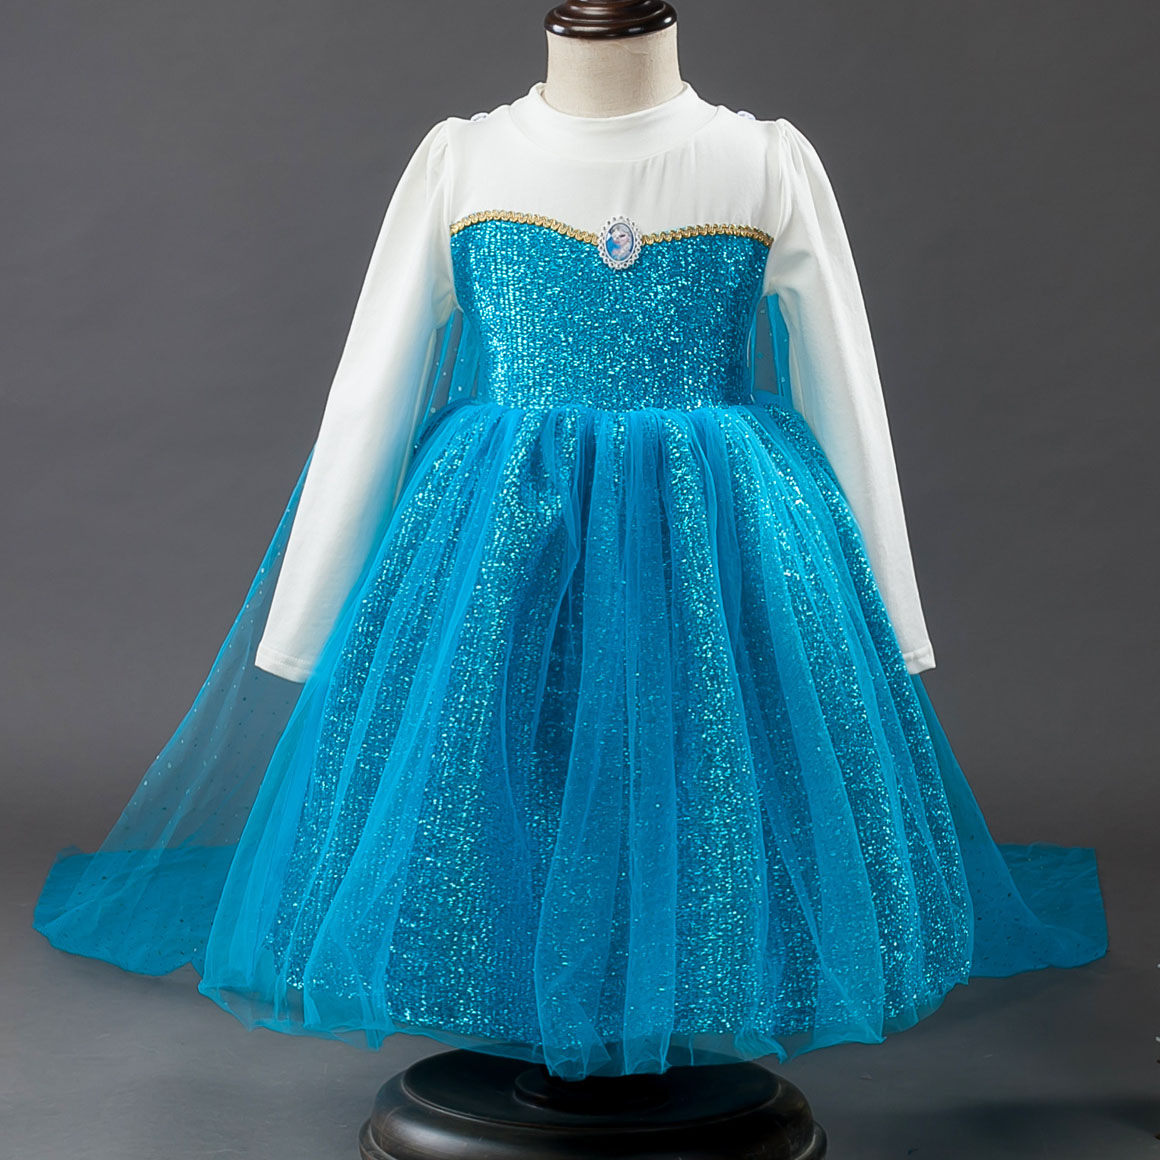 Lovely Cartoon Halloween Costume Blue Tutu Tulle Detachable Caped Princess Elsa Kids Par ...